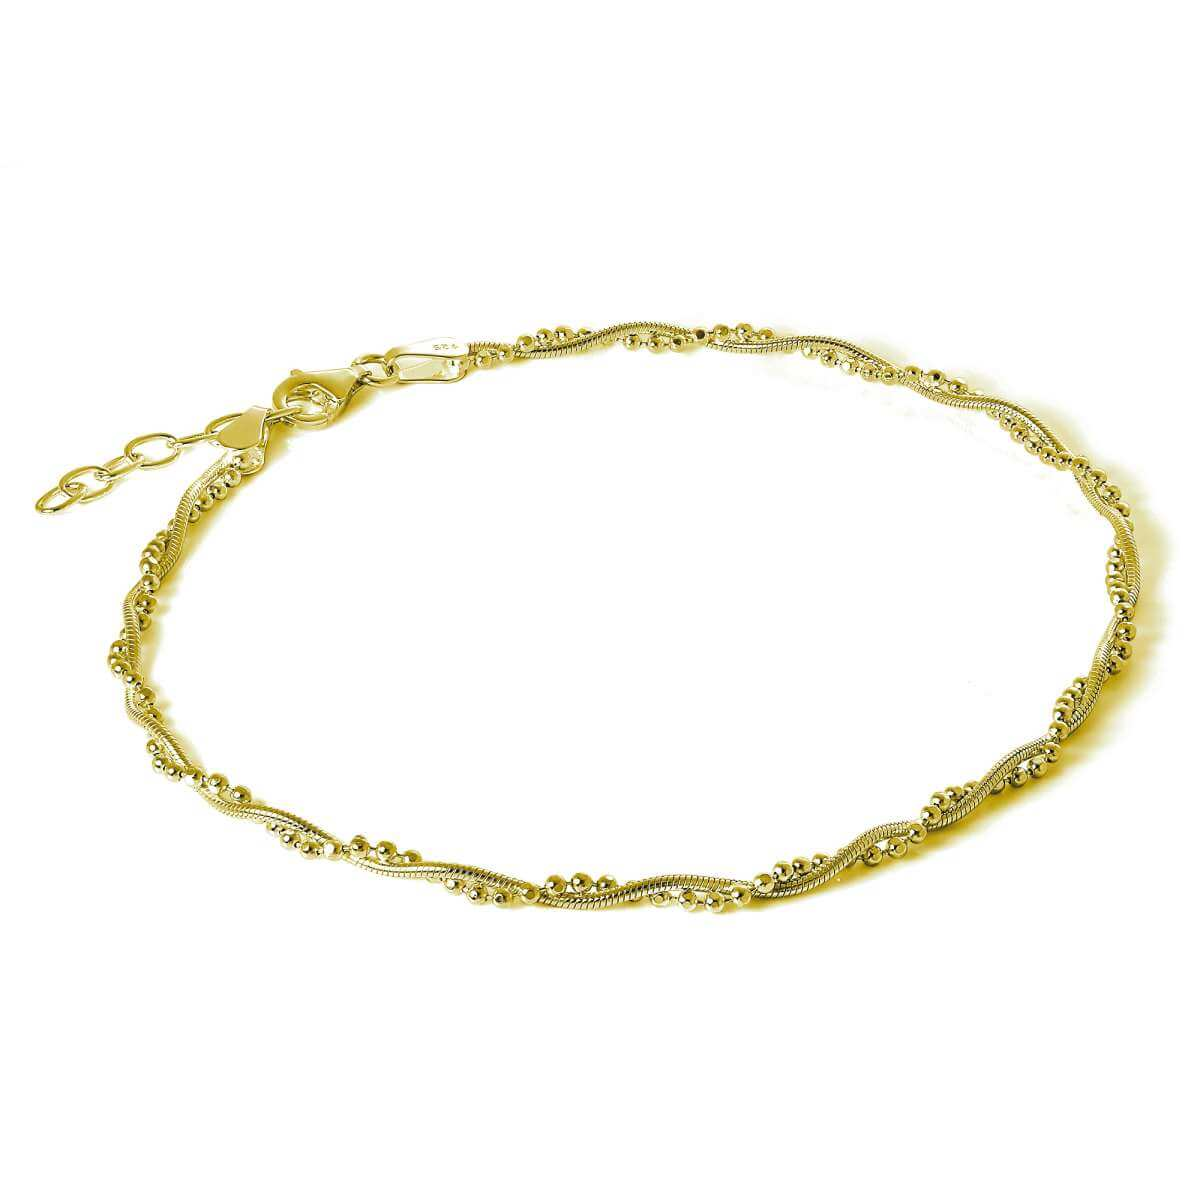 Gold Plated Sterling Silver Snake & Bead Twisted Chain Anklet